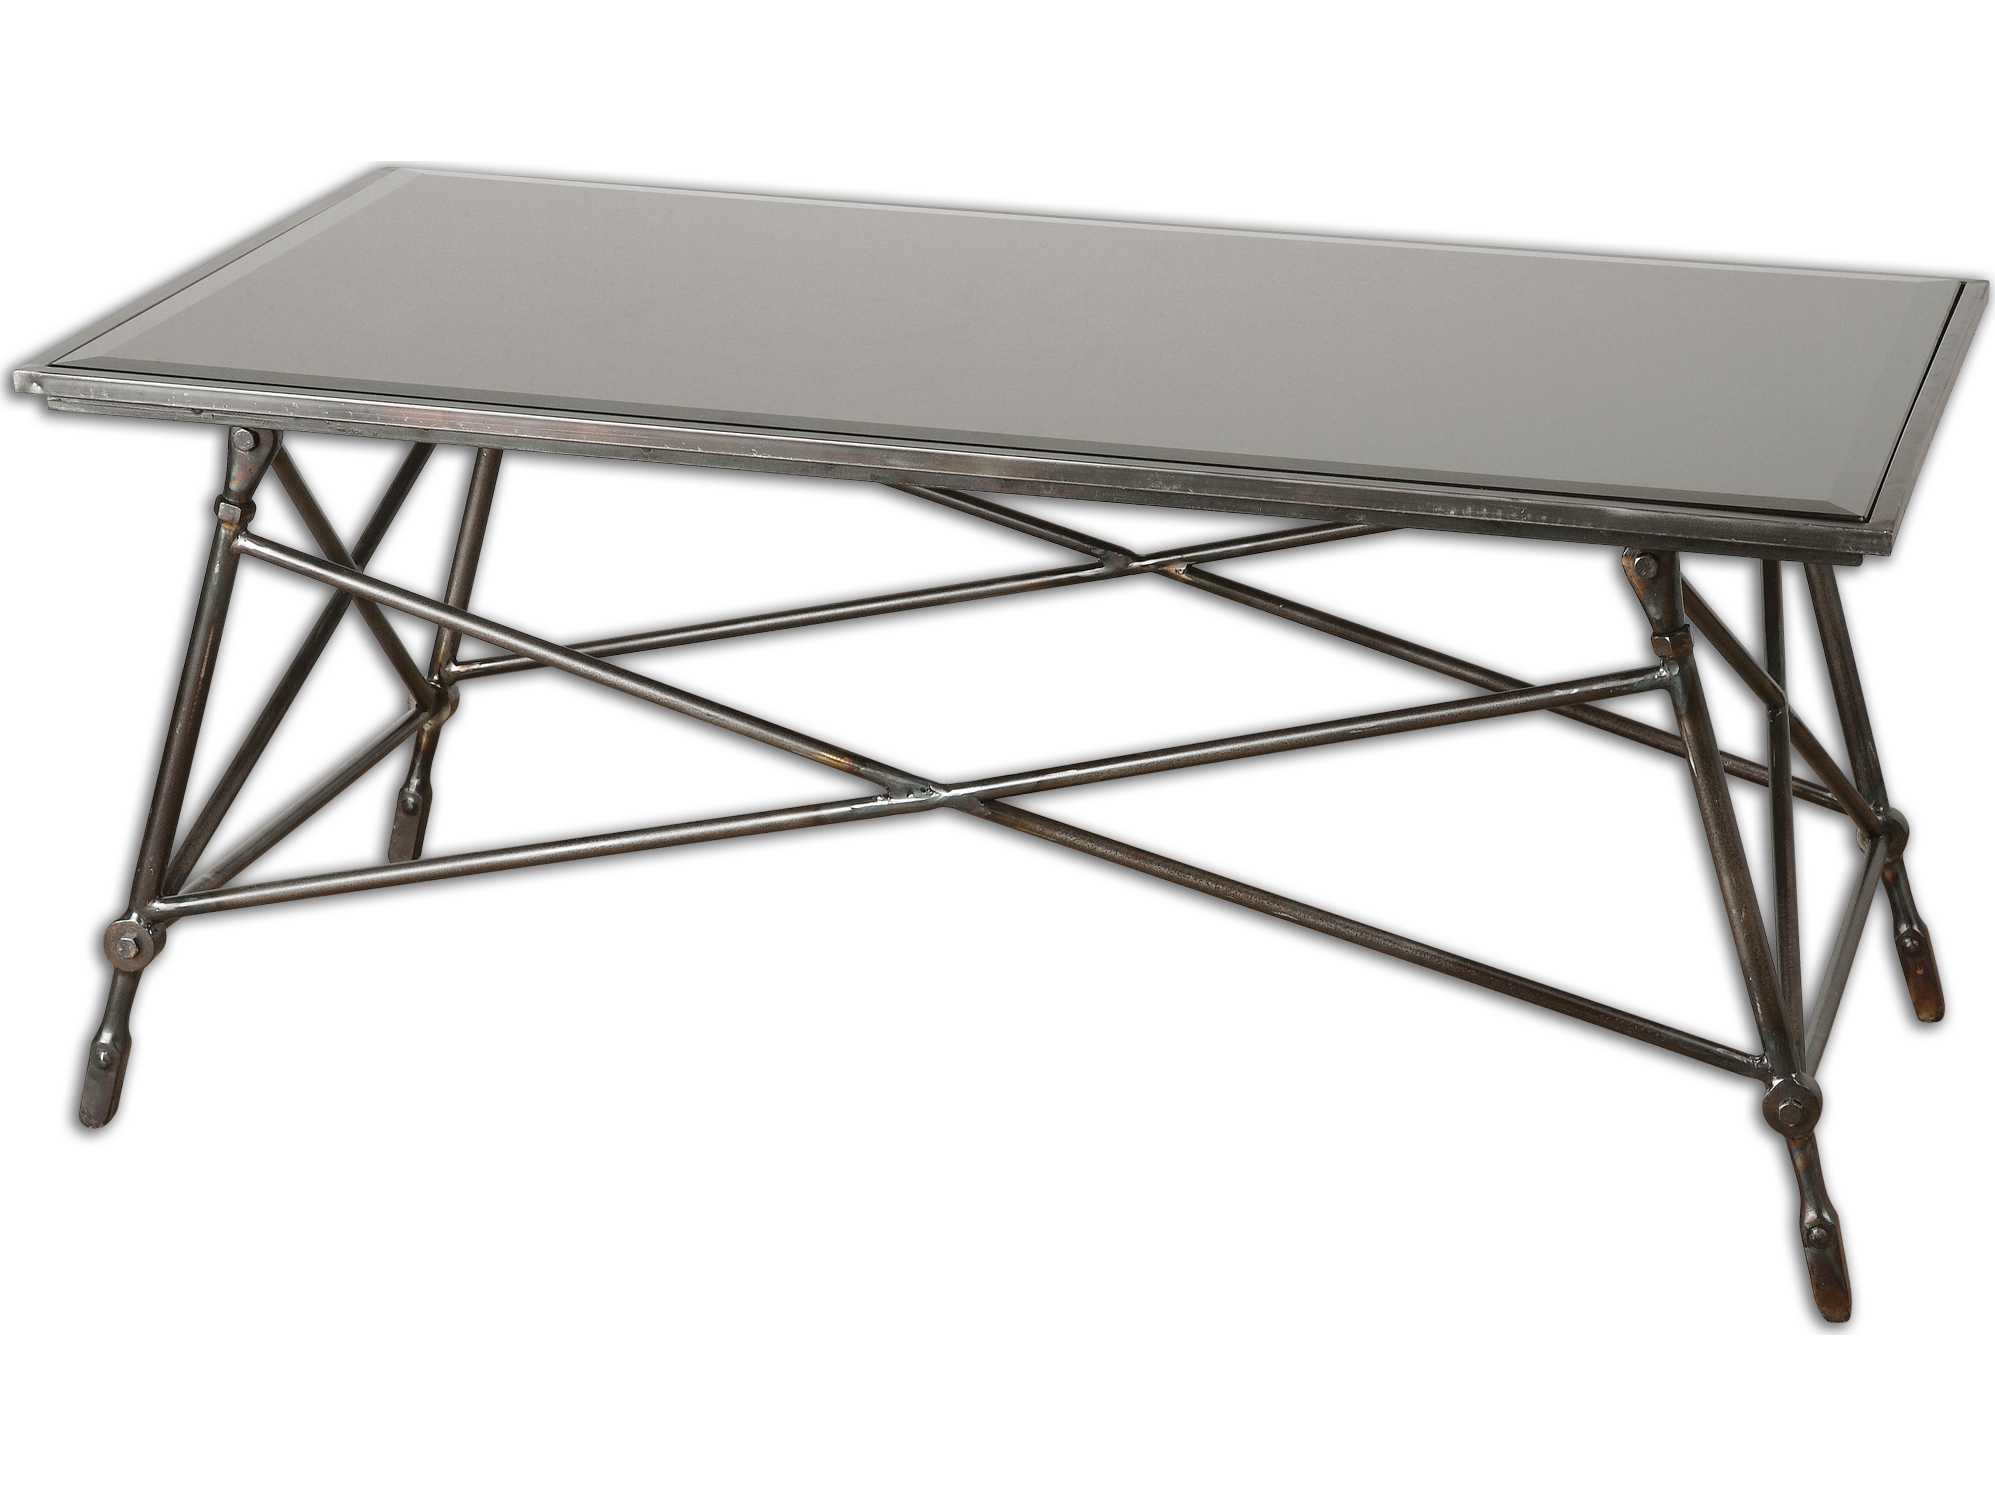 uttermost collier 44 x 22 rectangular black glass coffee table 24418. Black Bedroom Furniture Sets. Home Design Ideas